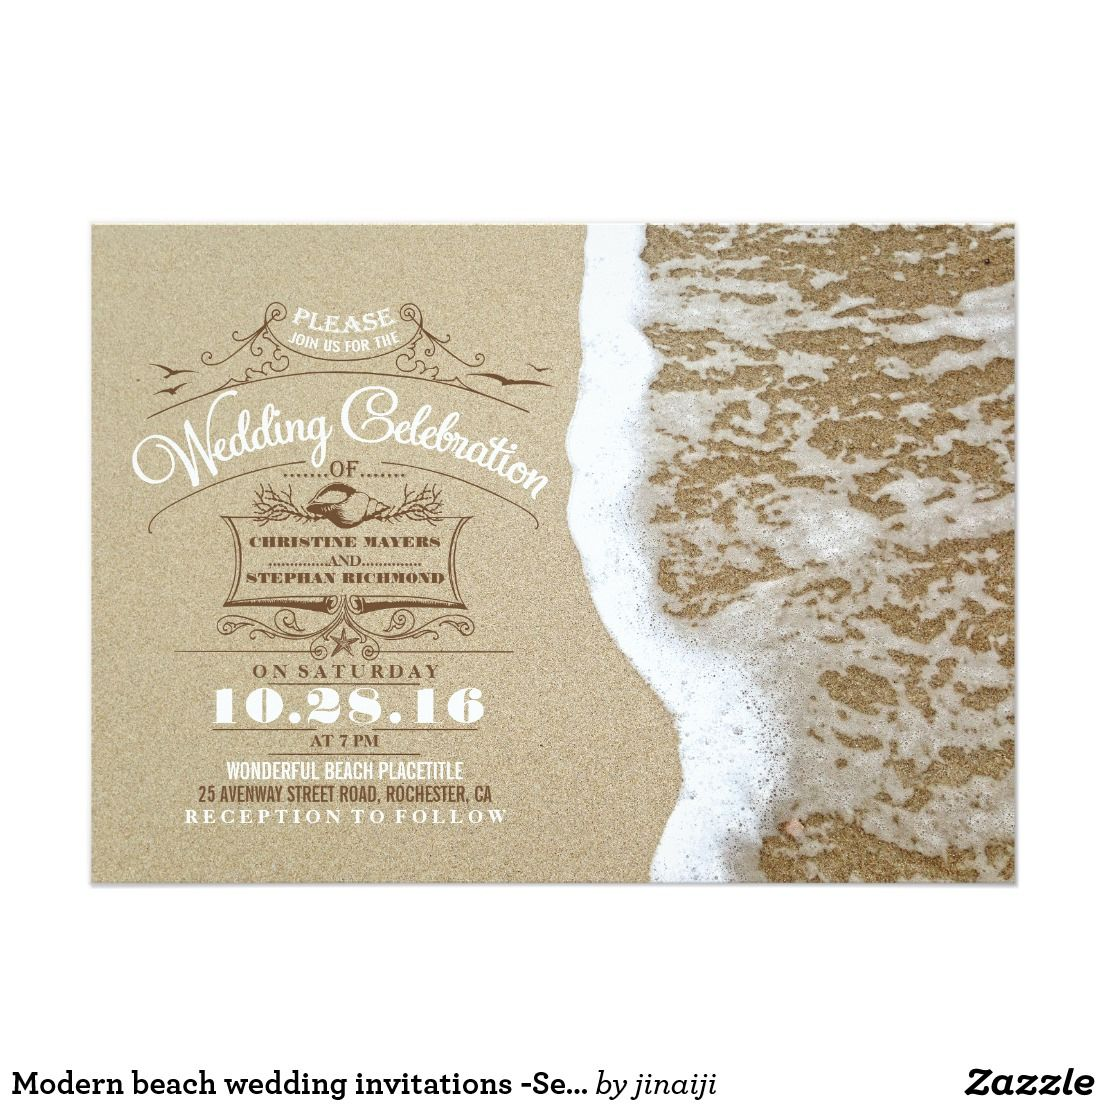 Modern beach wedding invitations -Sea Foam Sand | Beach wedding ...